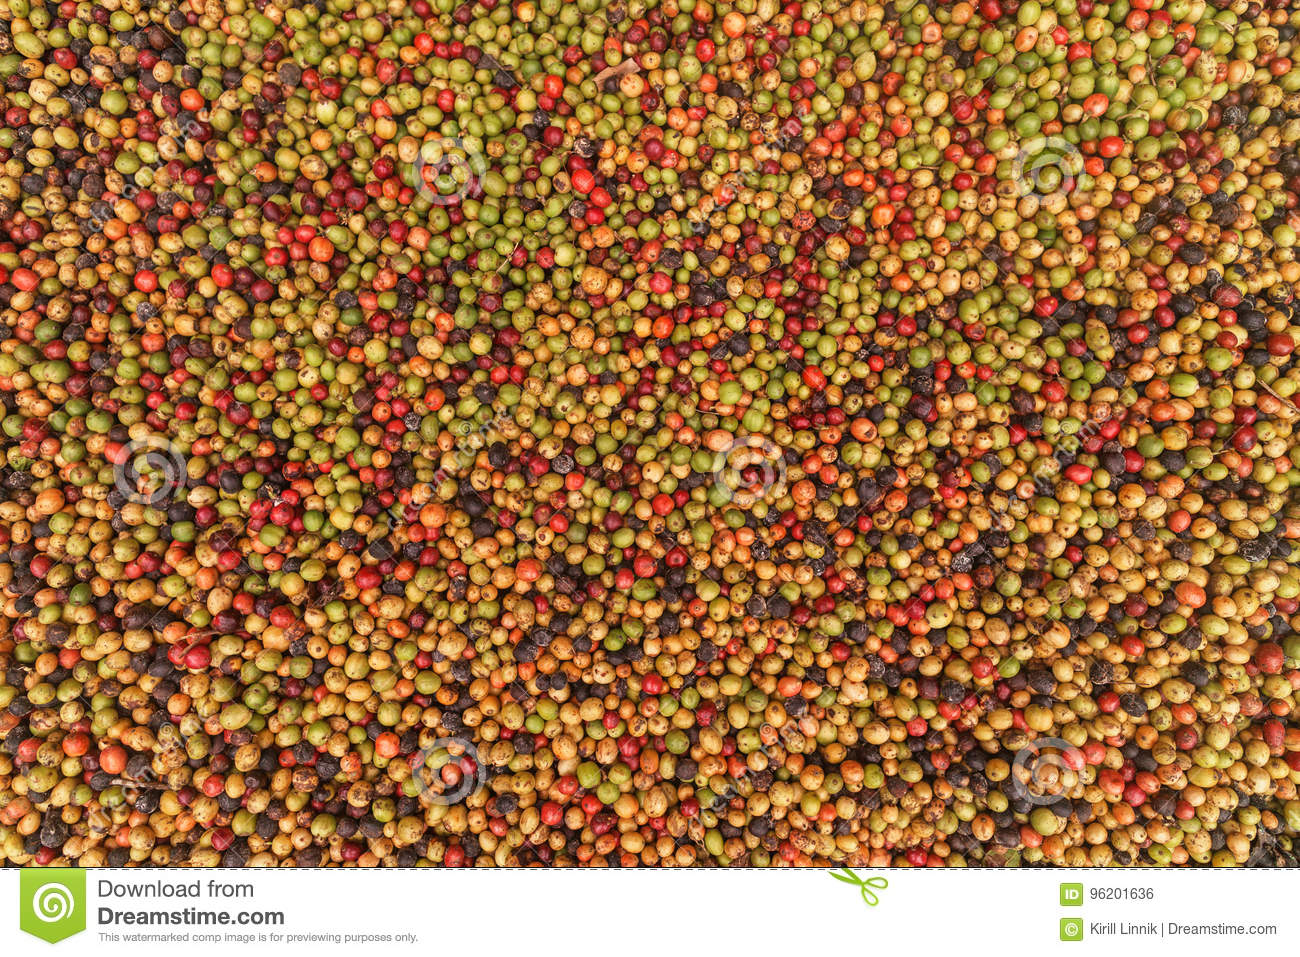 Download Big Variaty Of Coffee Beans Stock Photo - Image of organic, berries: 96201636